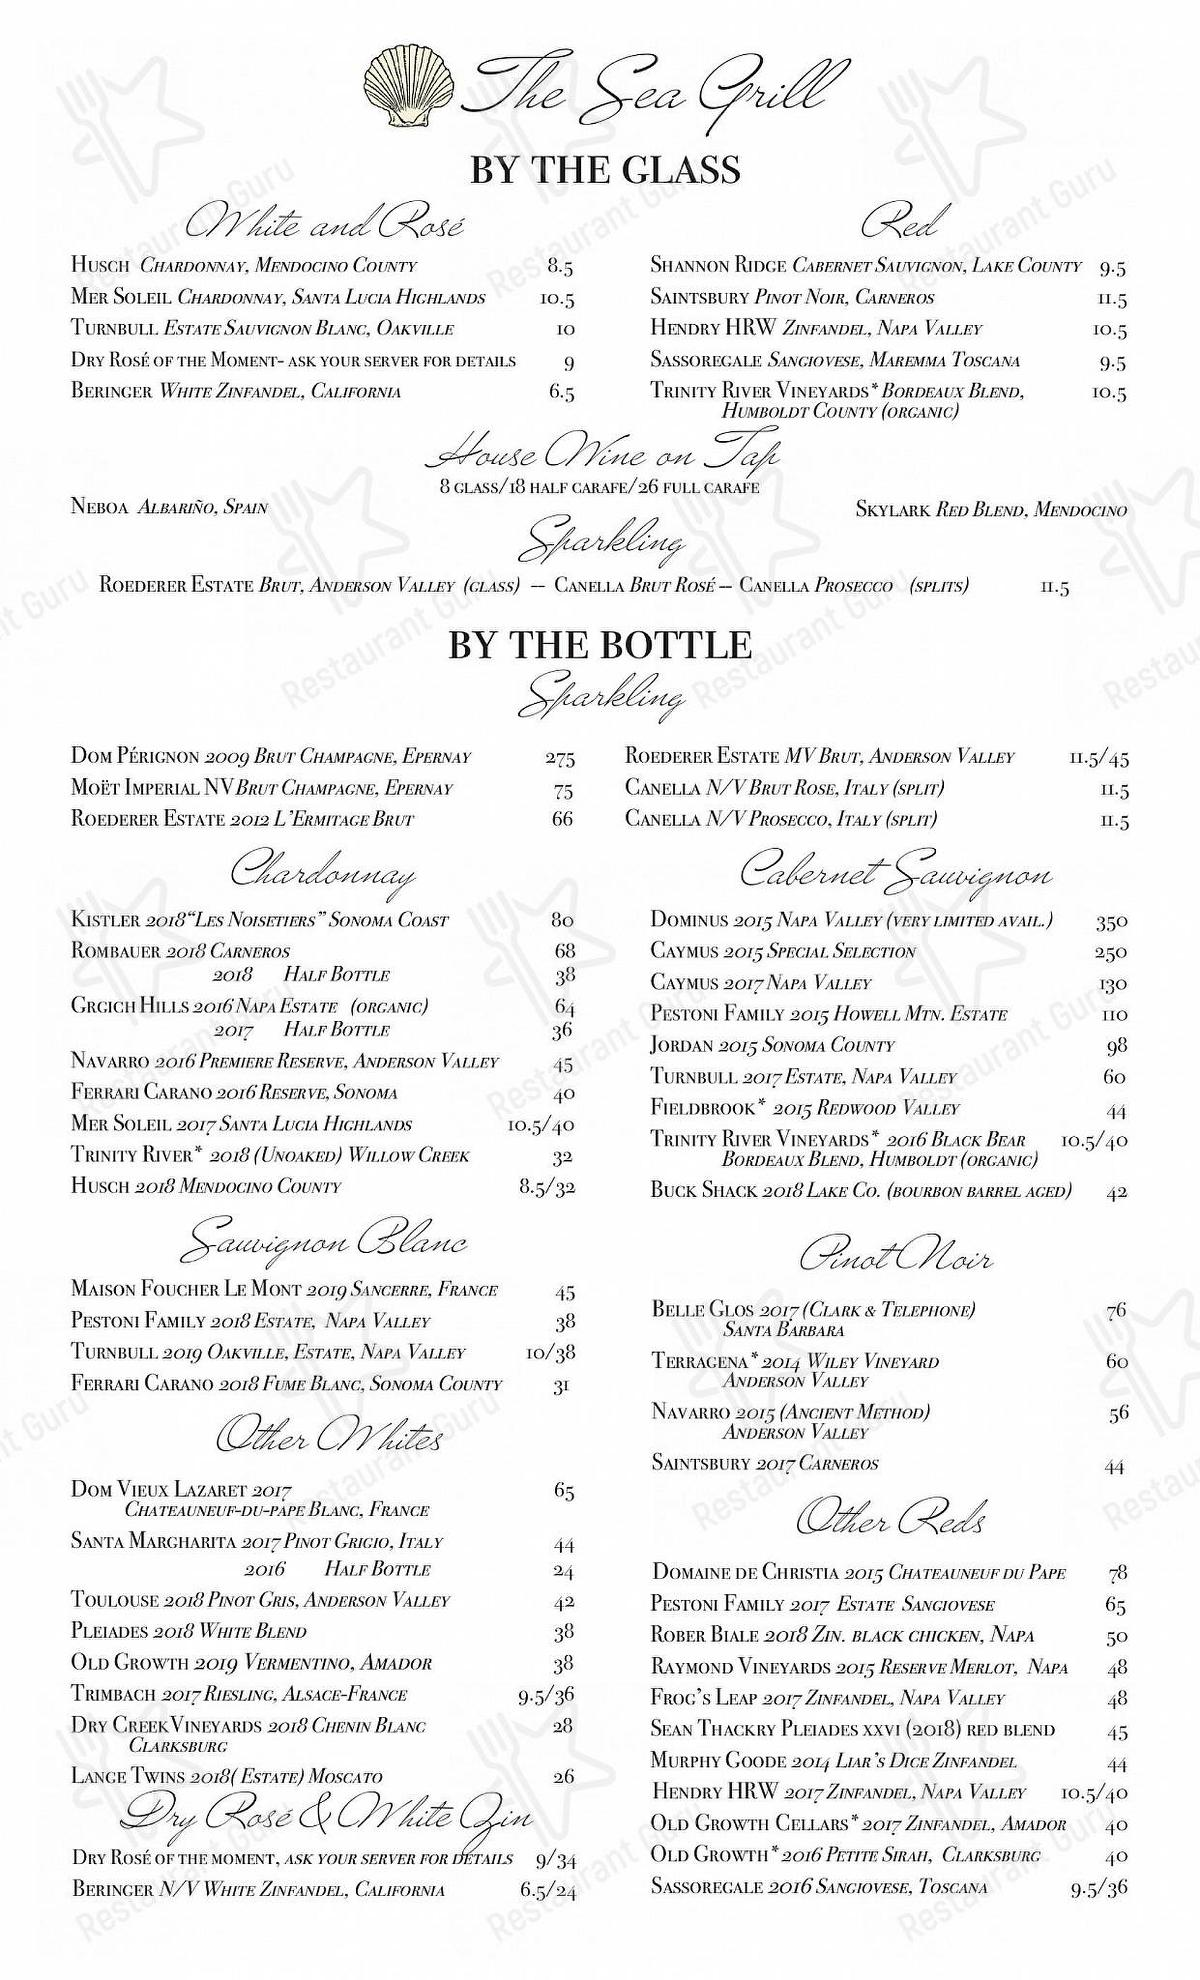 Sea Grill menu - dishes and beverages